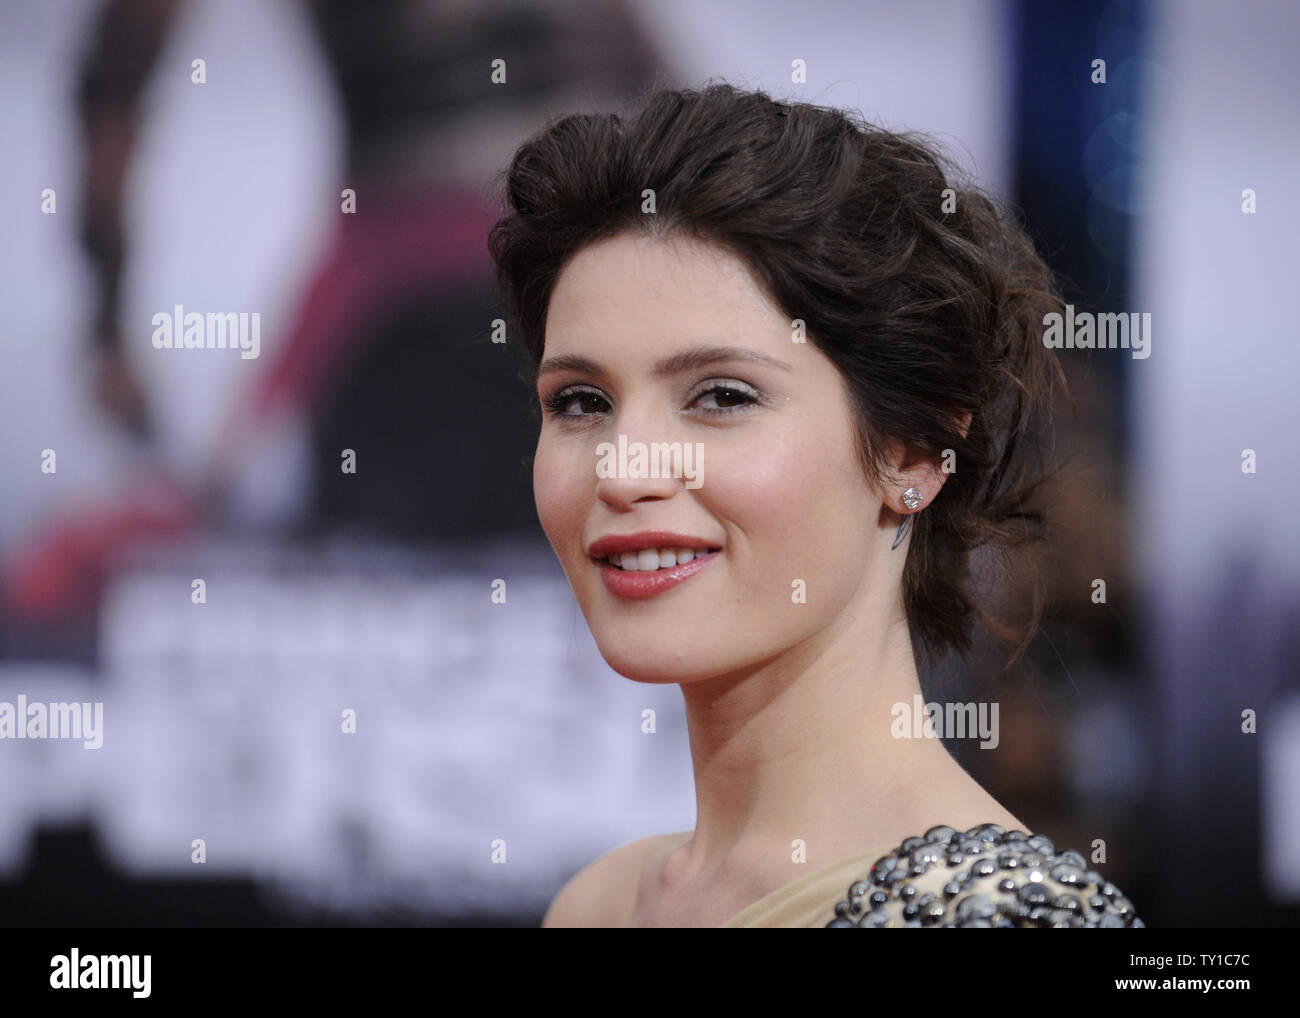 Gemma Arterton Prince Of Persia High Resolution Stock Photography And Images Alamy